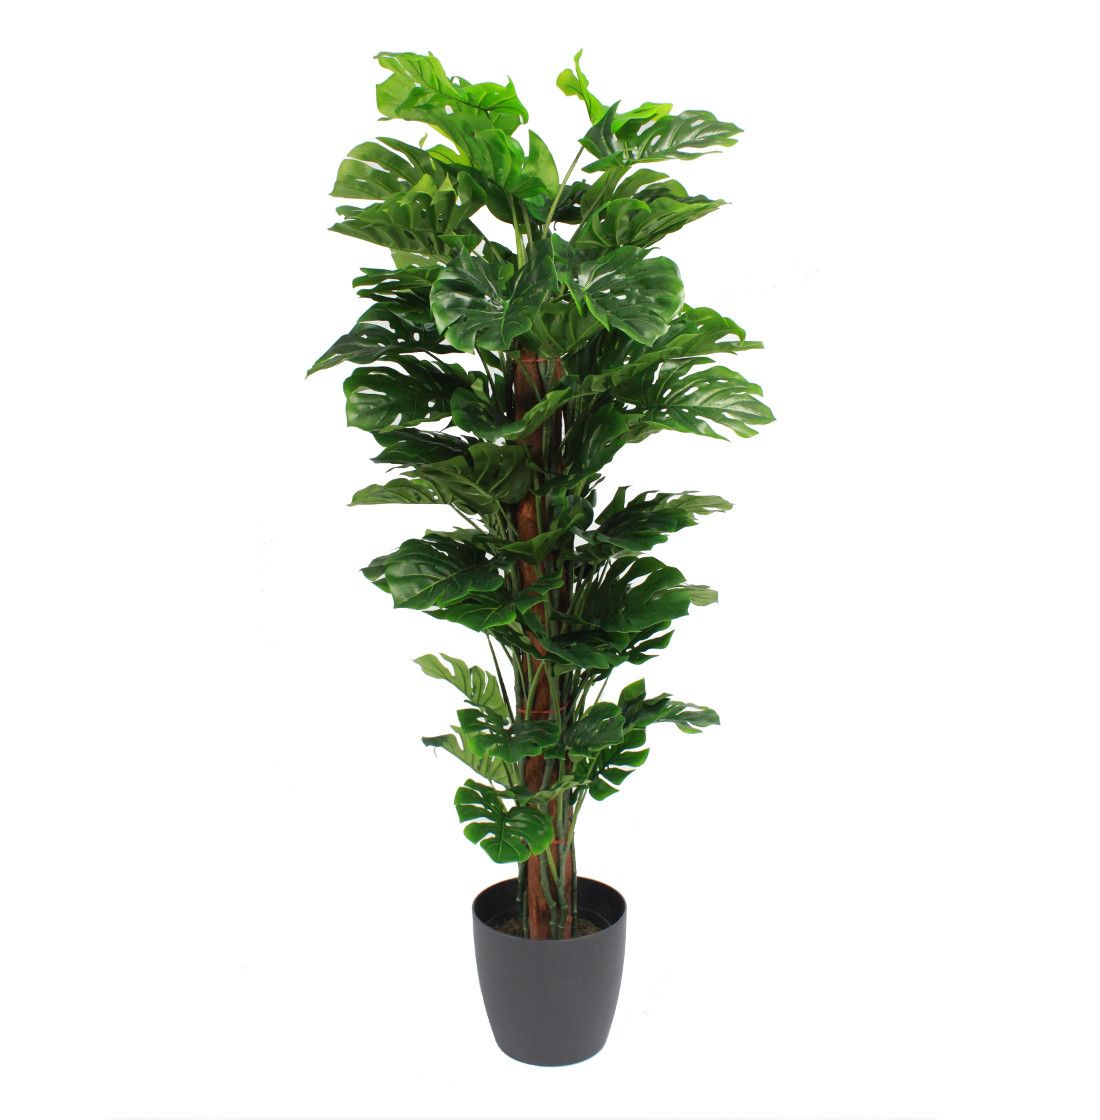 Artificial Cheese Jungle Plants Blooming Artificial Plants Cheese Plant Swiss Cheese Plant